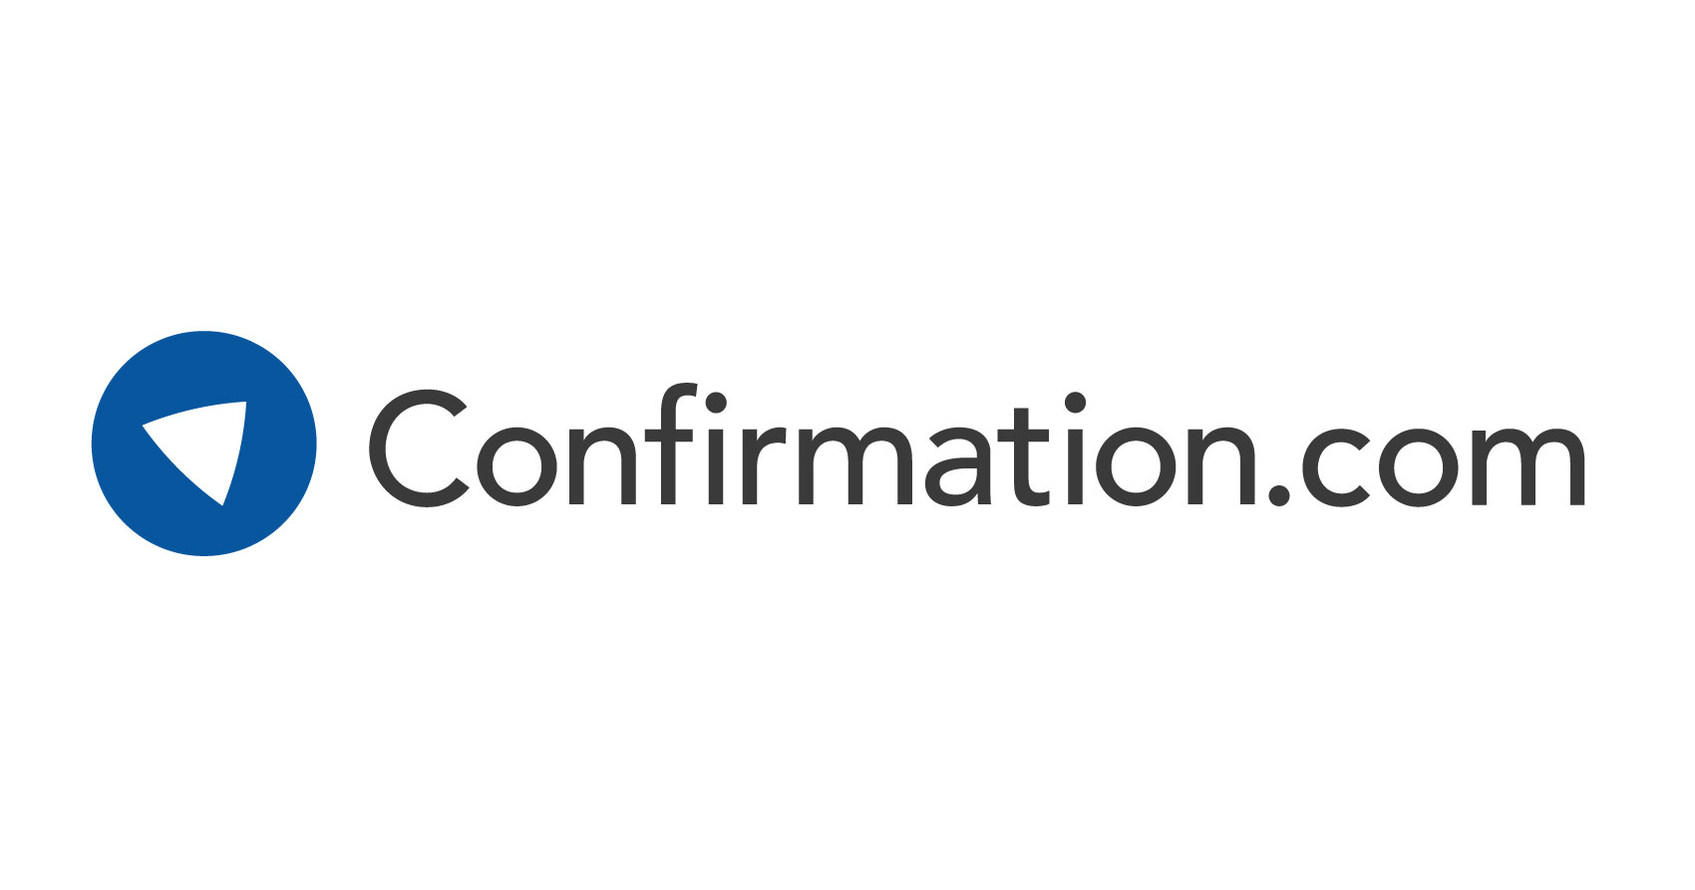 Accounting Today Recognizes Confirmation.com Executive as